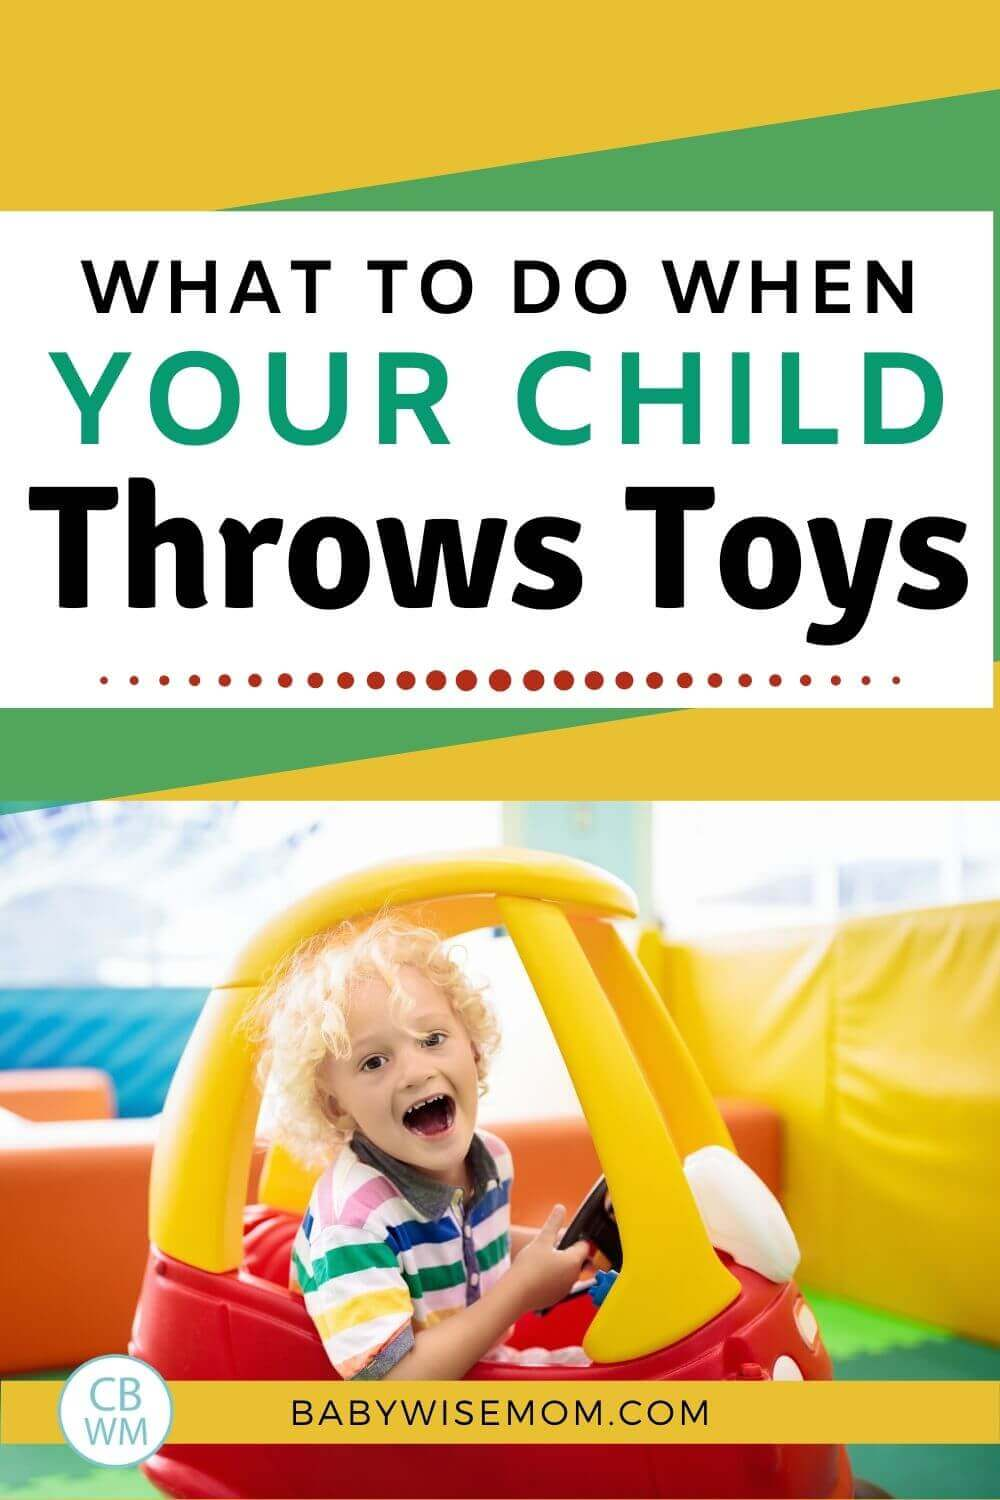 What to do when your child throws toys pinnable image